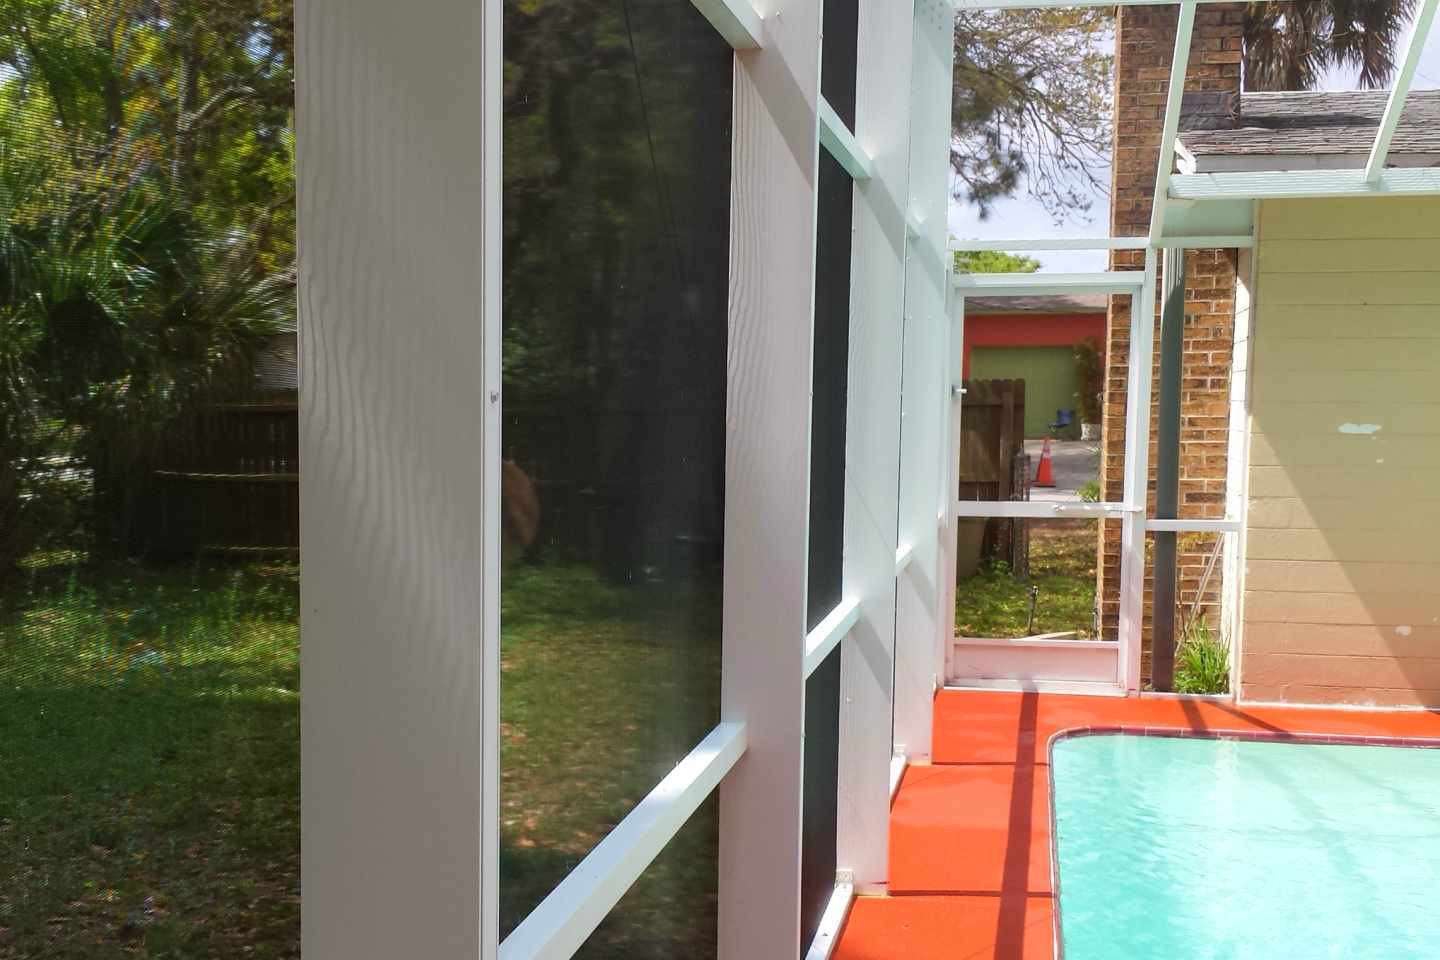 06-after-pressure-clean-pool-enclosure.jpg